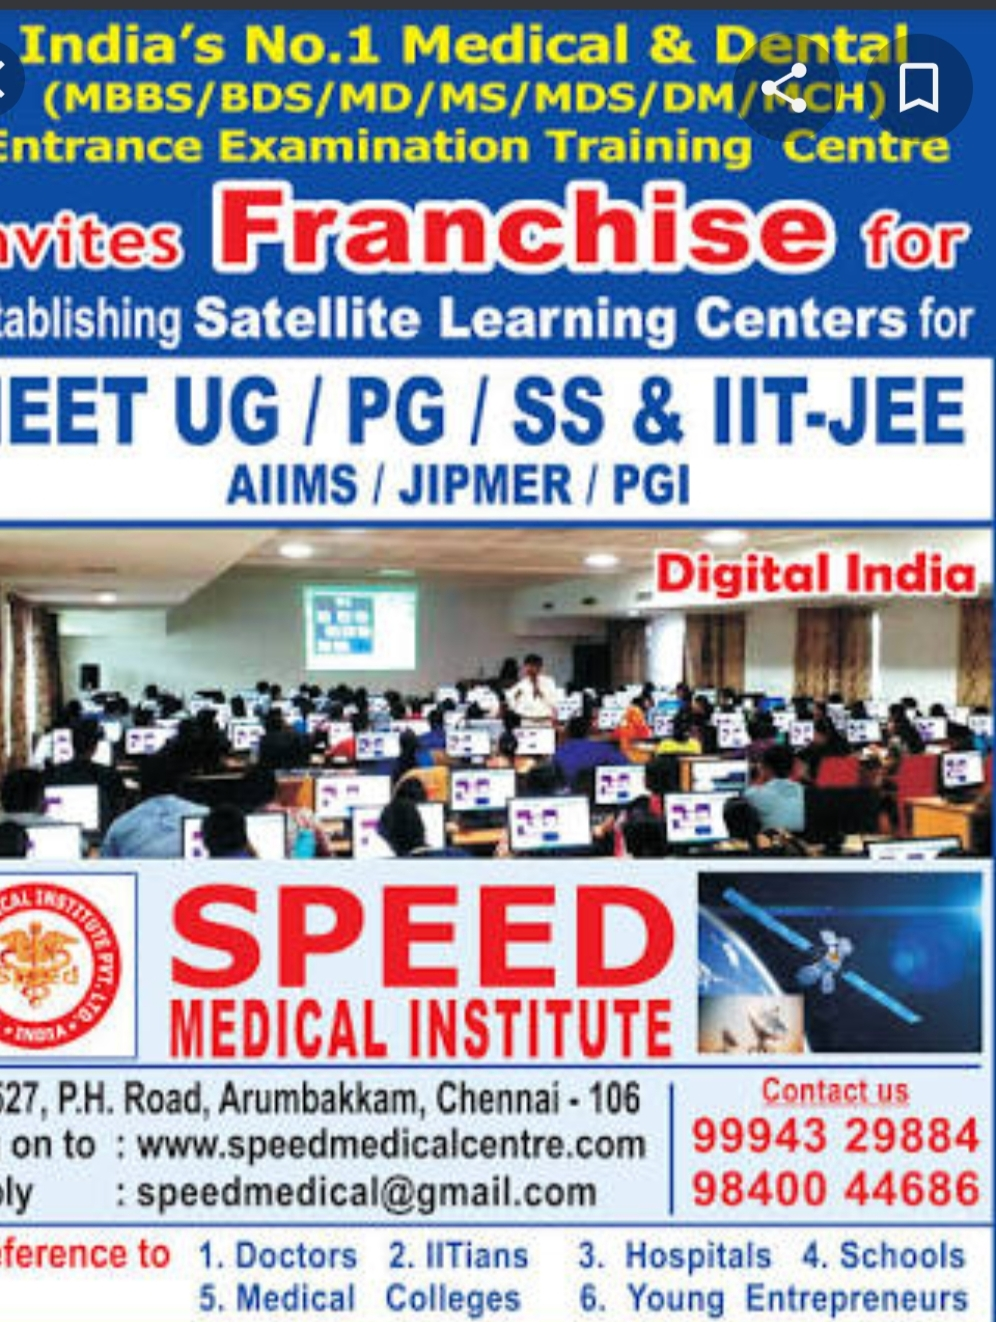 SPEED MEDICAL INSTITUTE